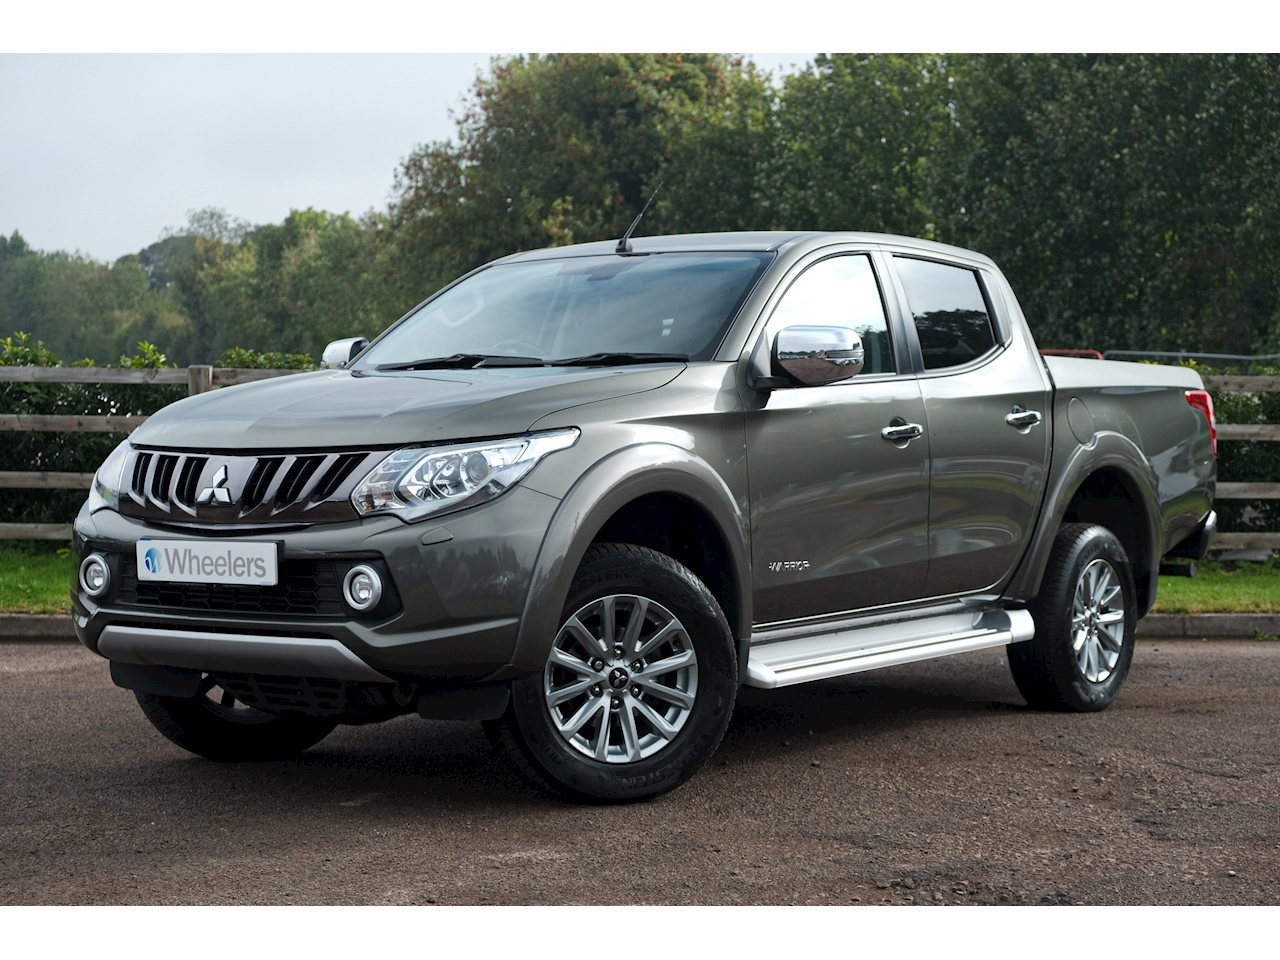 L200 Di-D 4Wd Warrior Dcb Pick-Up 2.4 Automatic Diesel